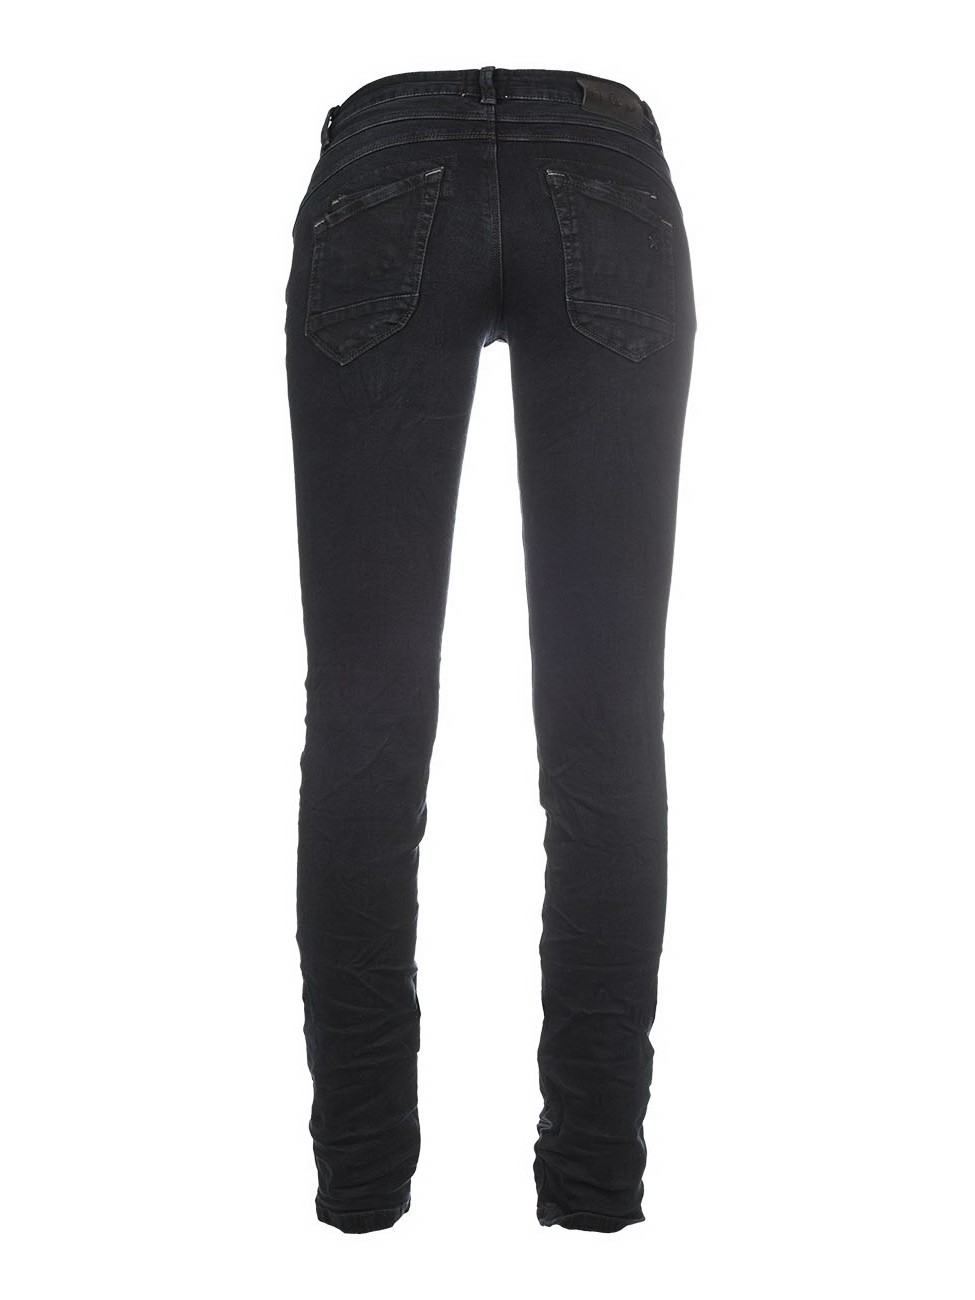 MOD Damen Jeans Ulla - Slim Fit - Schwarz - Smoked Black